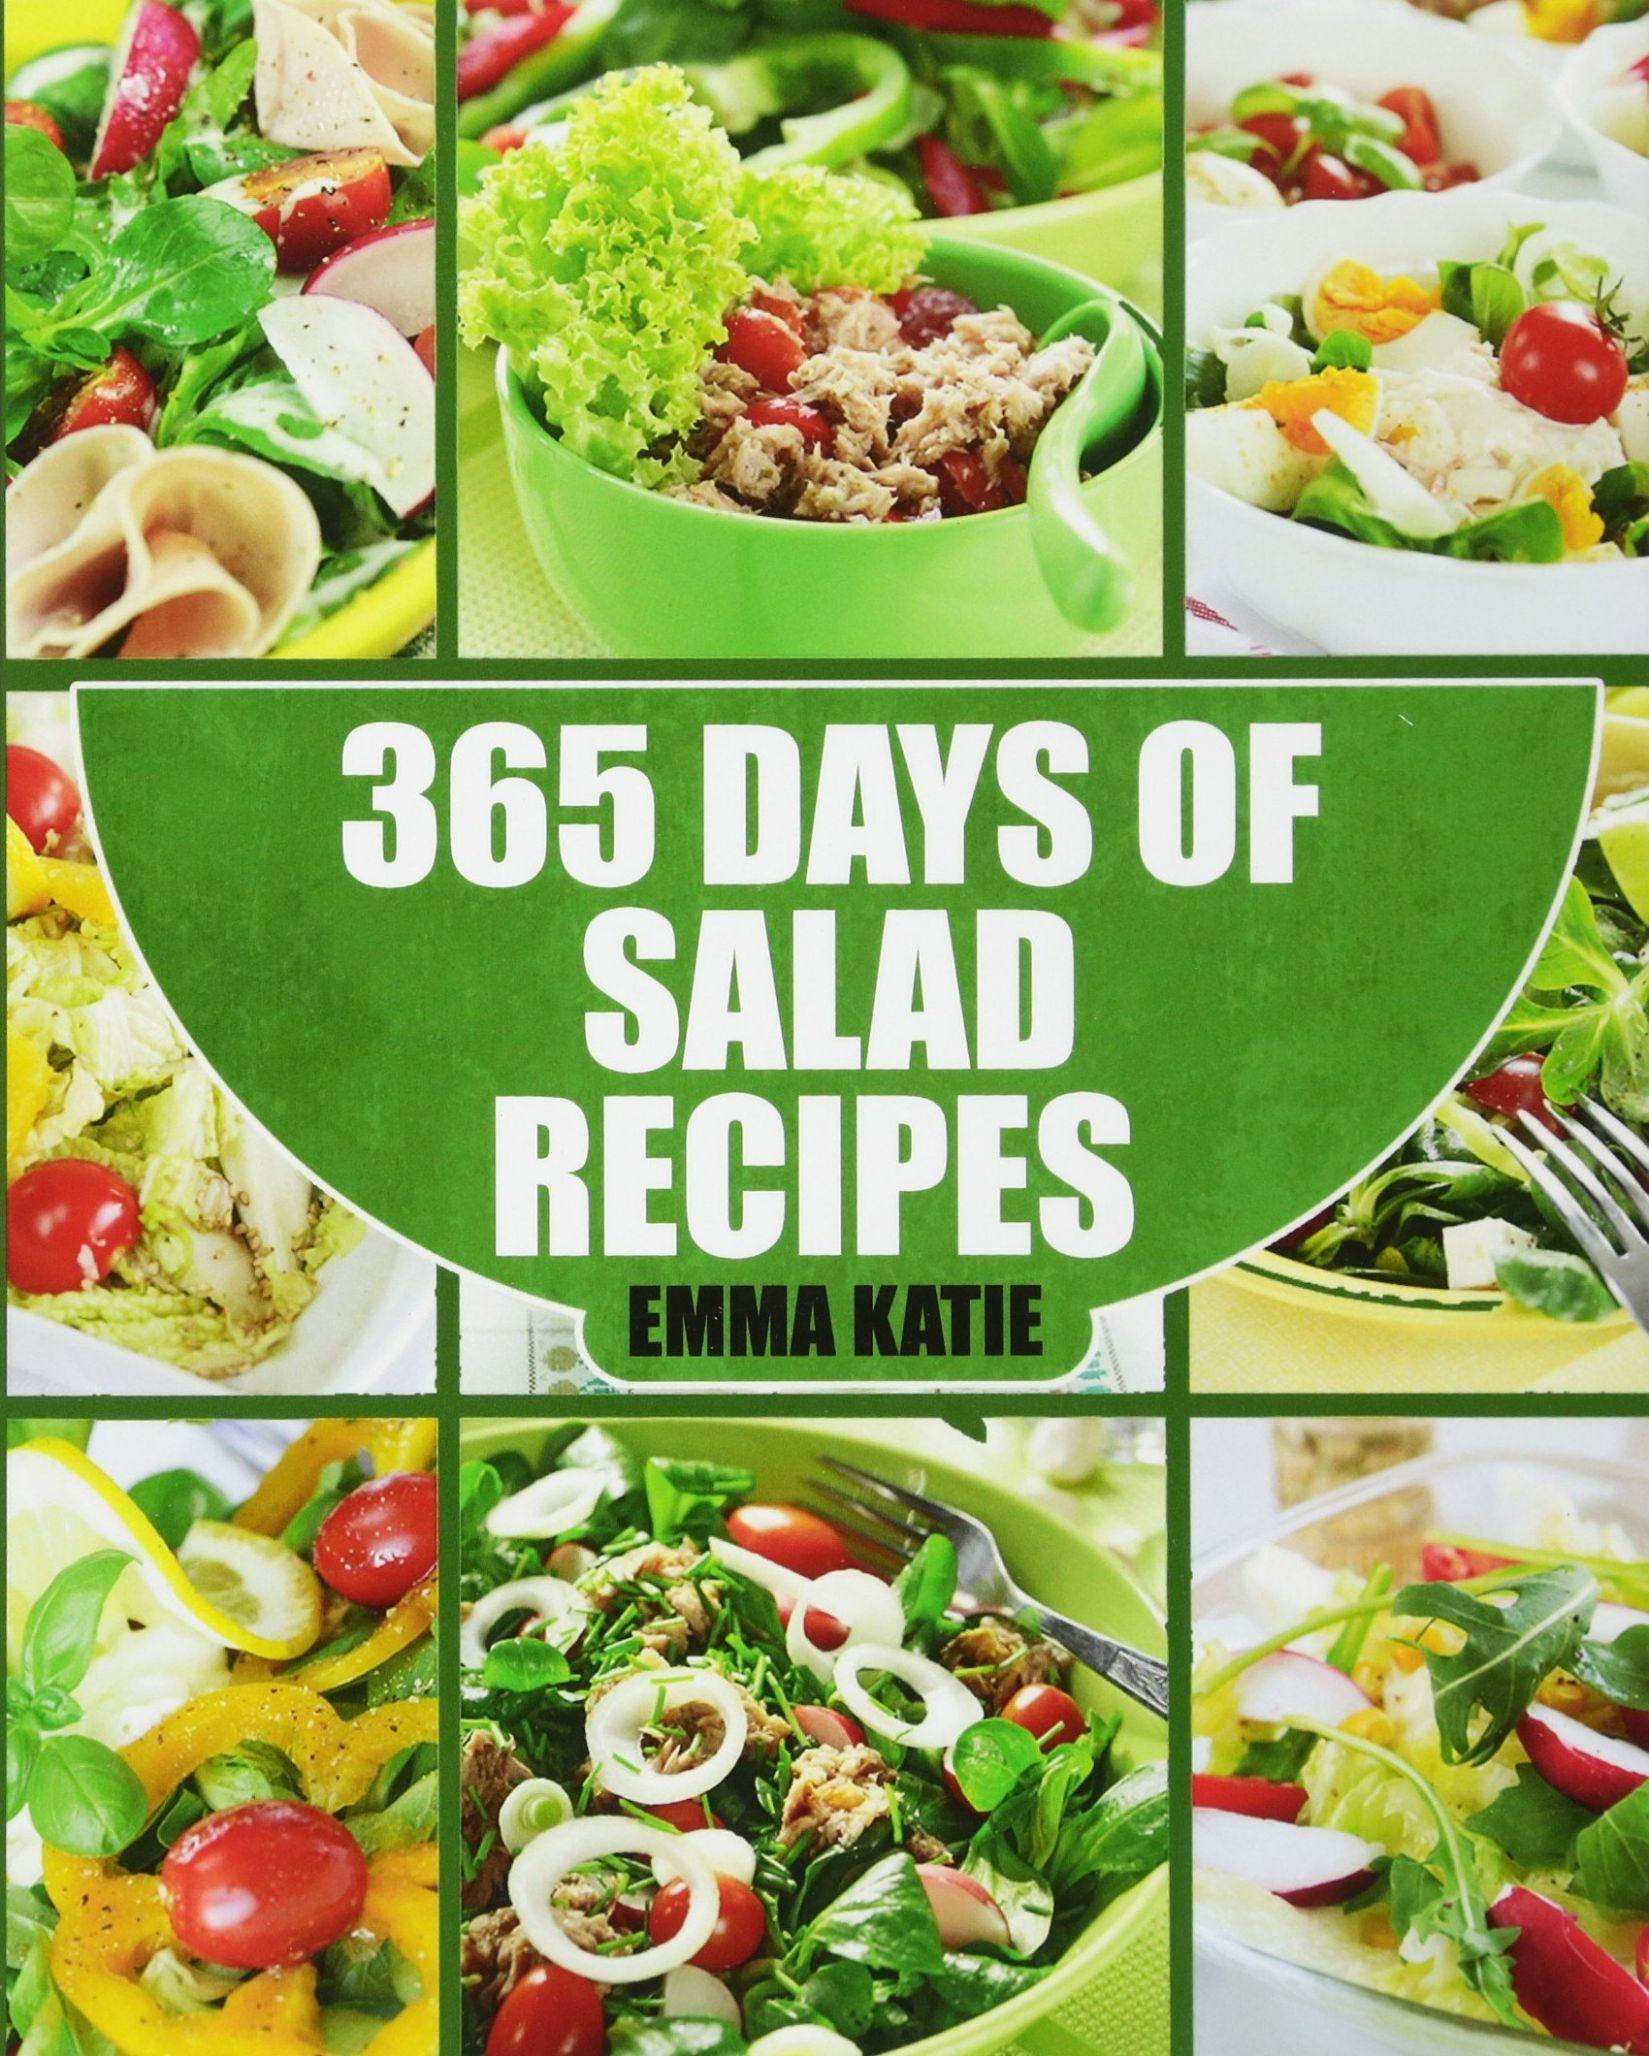 Salads: 8 Days of Salad Recipes (Salads, Salads Recipes, Salads ..